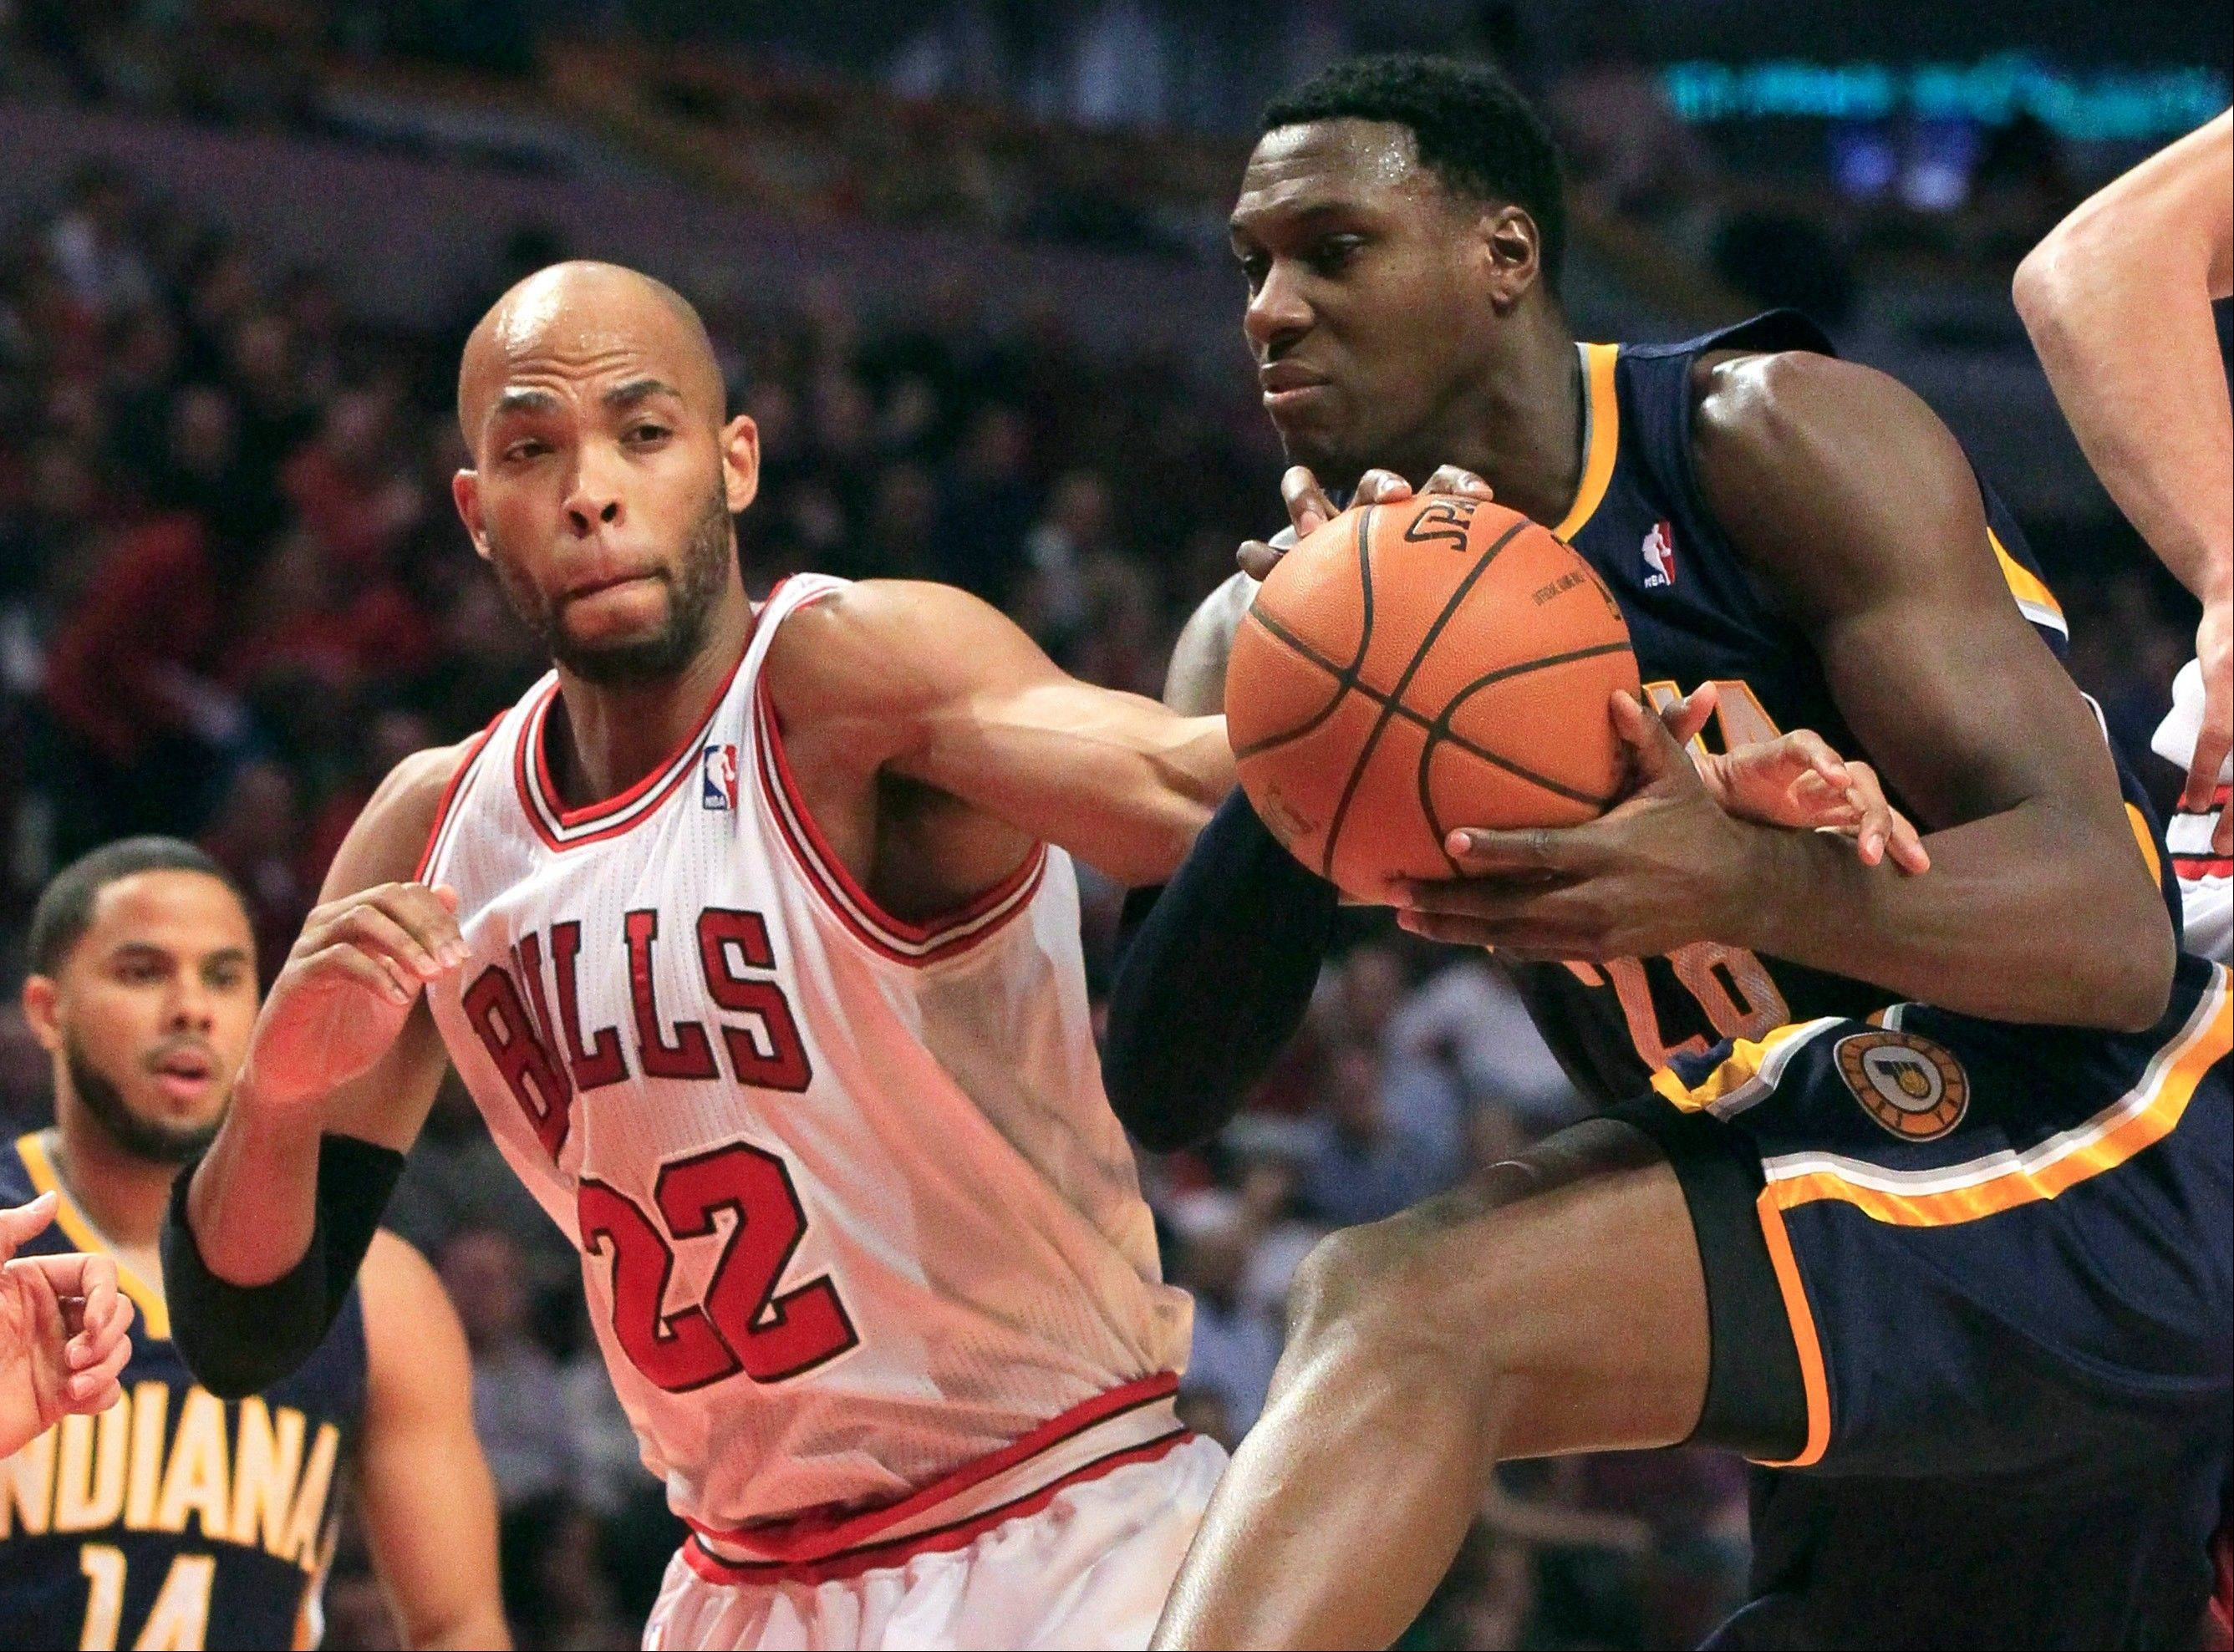 Bulls forward Taj Gibson fouls Indiana Pacers center Ian Mahinmi Tuesday during the first half at the United Center.